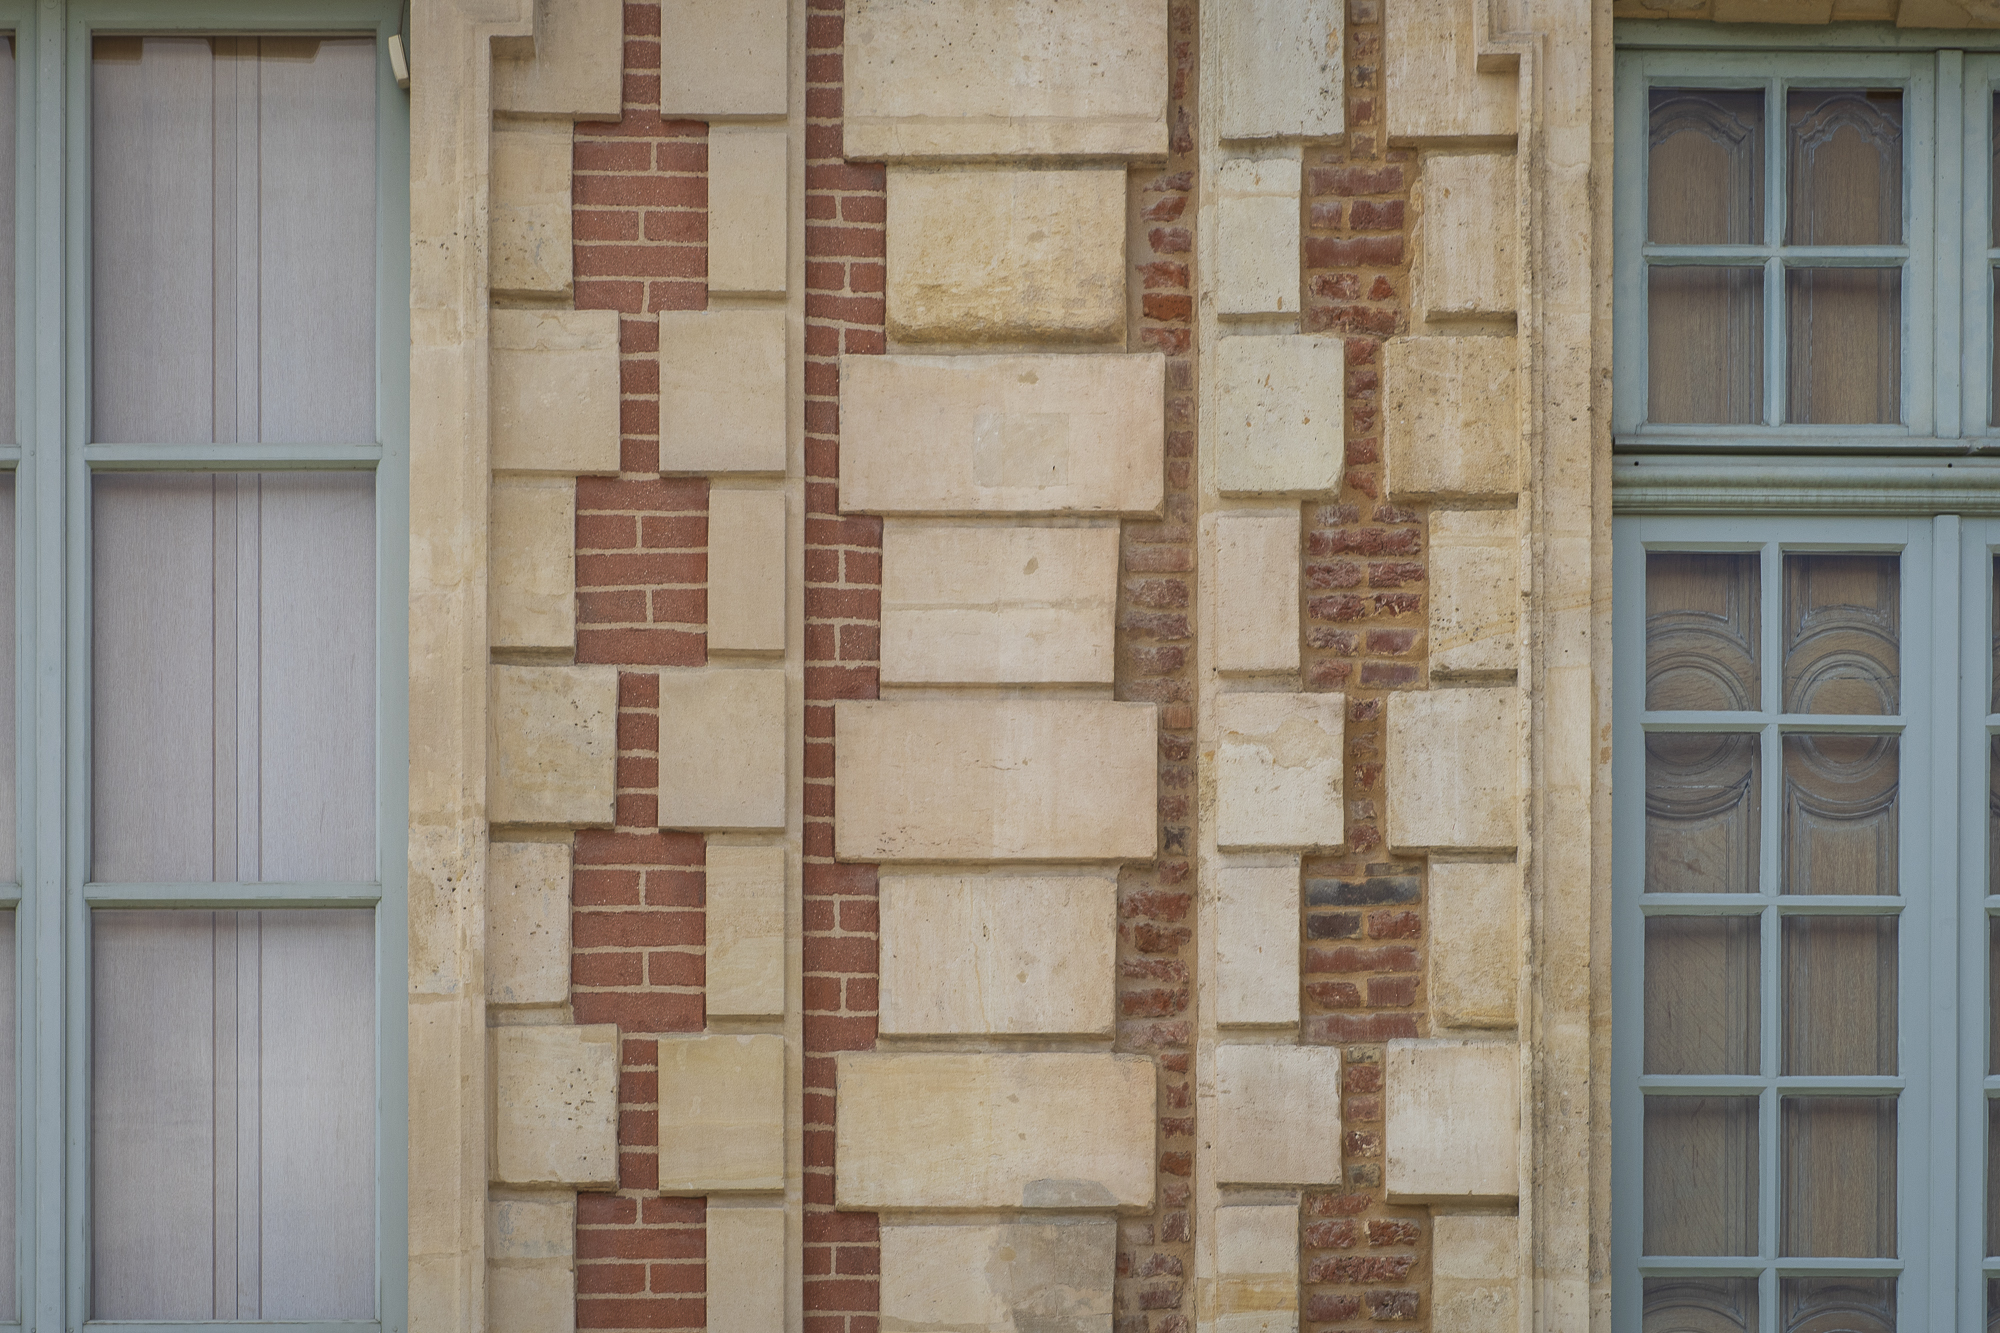 Real vs Fake Bricks at Place des Vosges  PHOTOGRAPHY: ALEXANDER J.E. BRADLEY • NIKON D7000 • AF-S NIKKOR 24-70MM Ƒ/2.8G ED @ 70MM • Ƒ/8 • 1/250 SEC • ISO 100